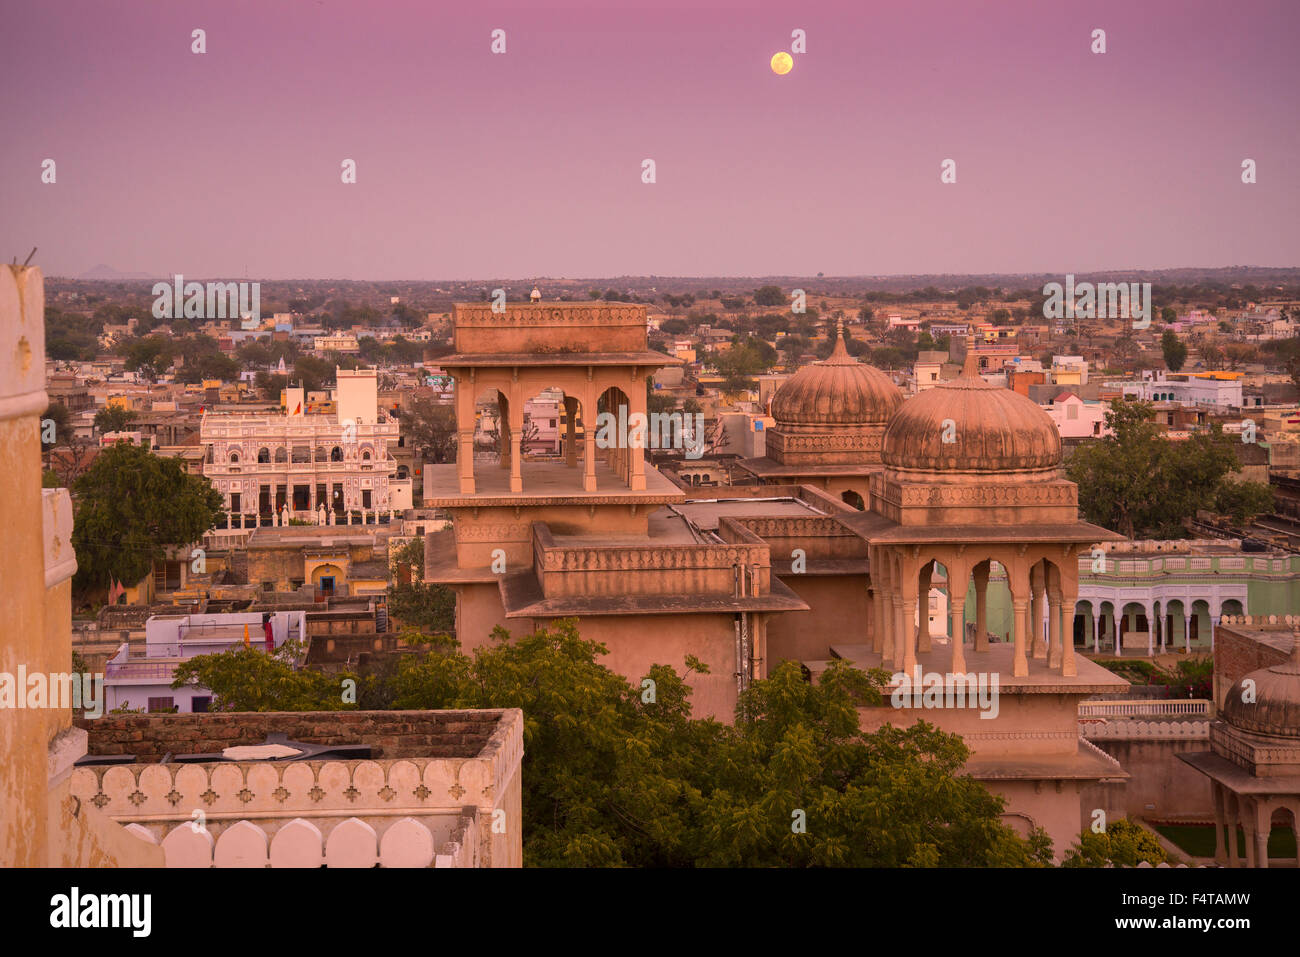 Rajasthan, India, Asia, view from rooftop over Mandava at dusk - Stock Image